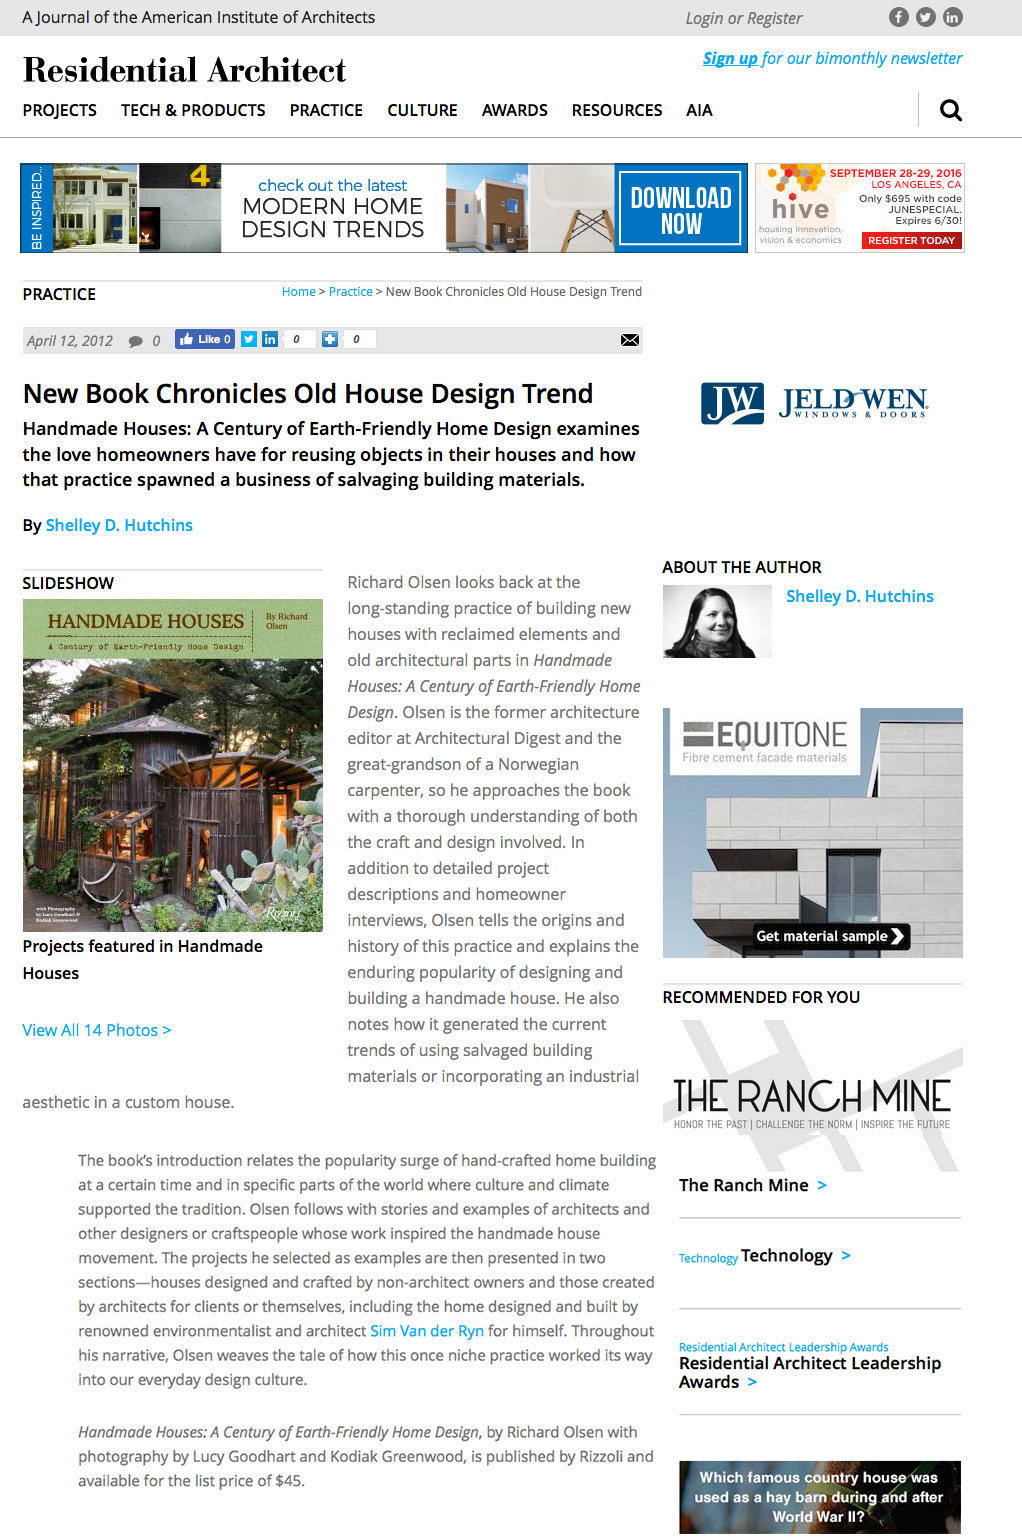 Handmade Houses   reviewed by Shelley D. Hutchins in   Residential Architect  , April 12, 2012.